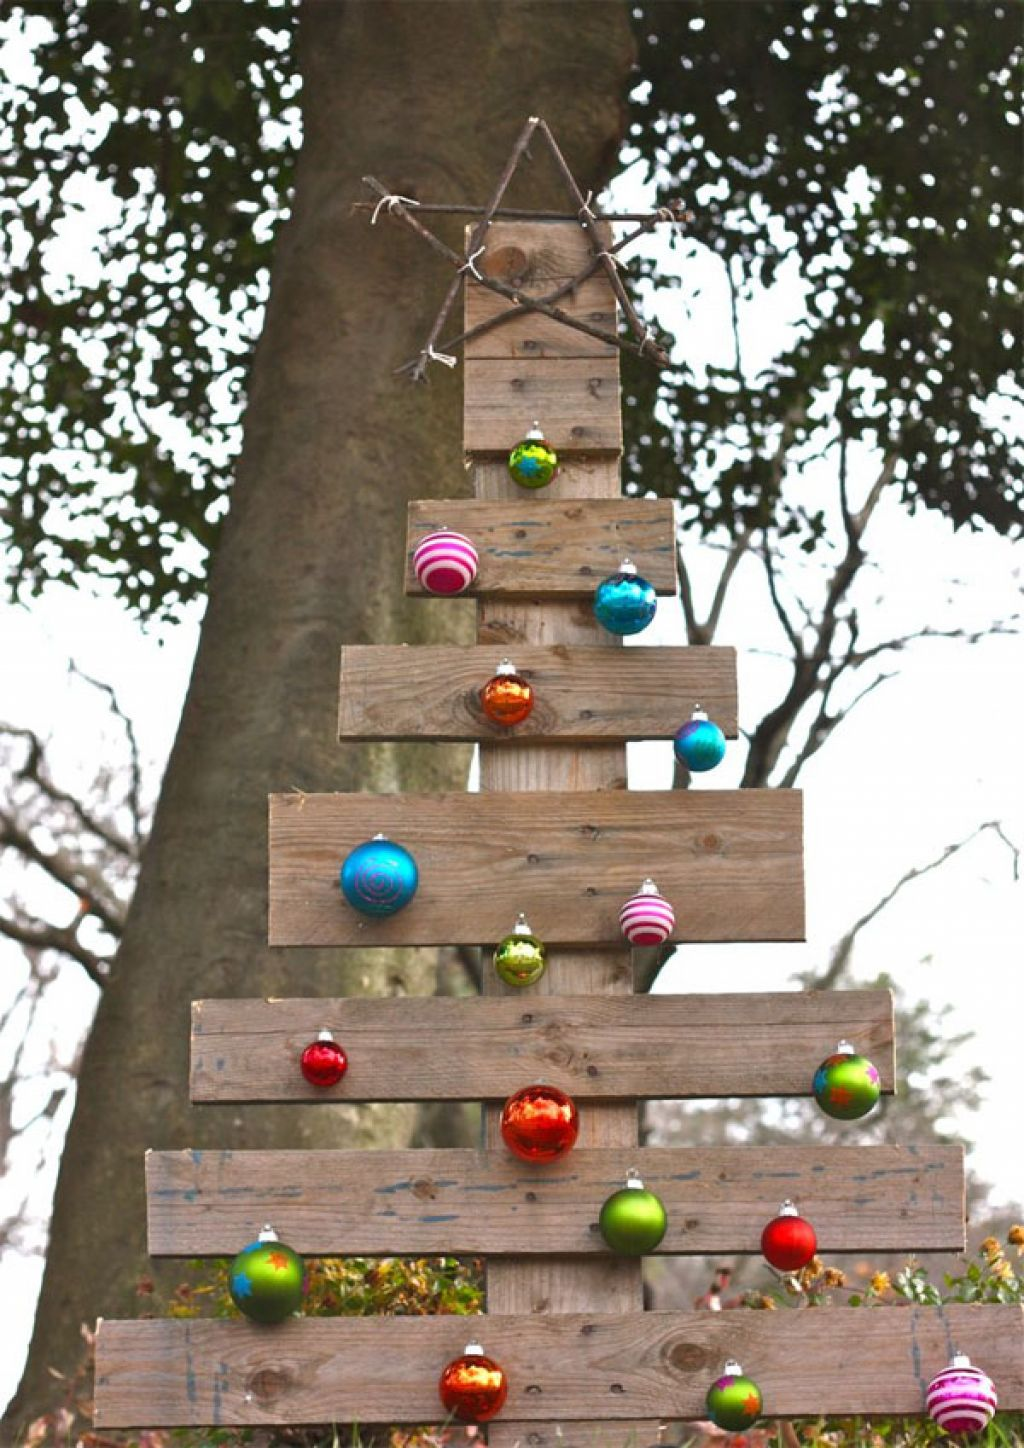 Outdoor Decorating Ideas 10 Diy Ideas For The Holidays